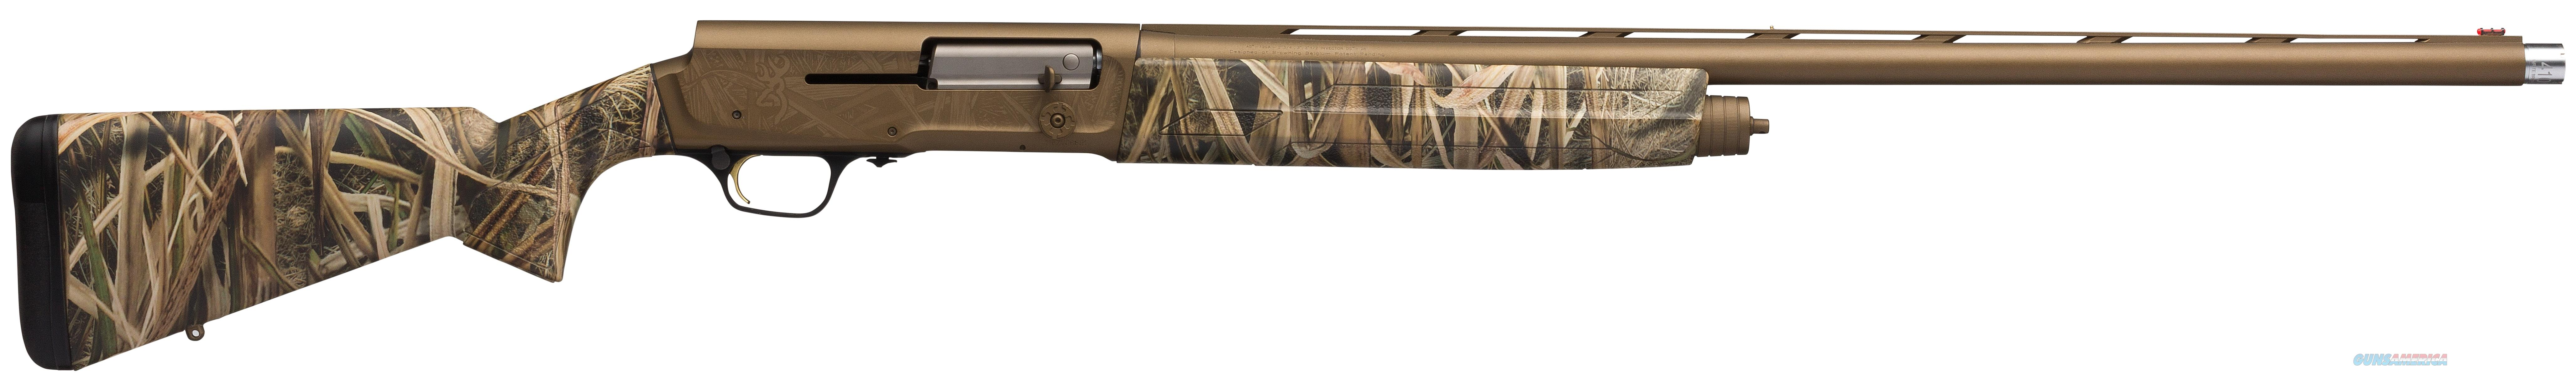 "Browning A5 Wicked Wing 12 GA 26"" Bronze/MOSGB 0118412005   Guns > Shotguns > Browning Shotguns > Autoloaders > Hunting"